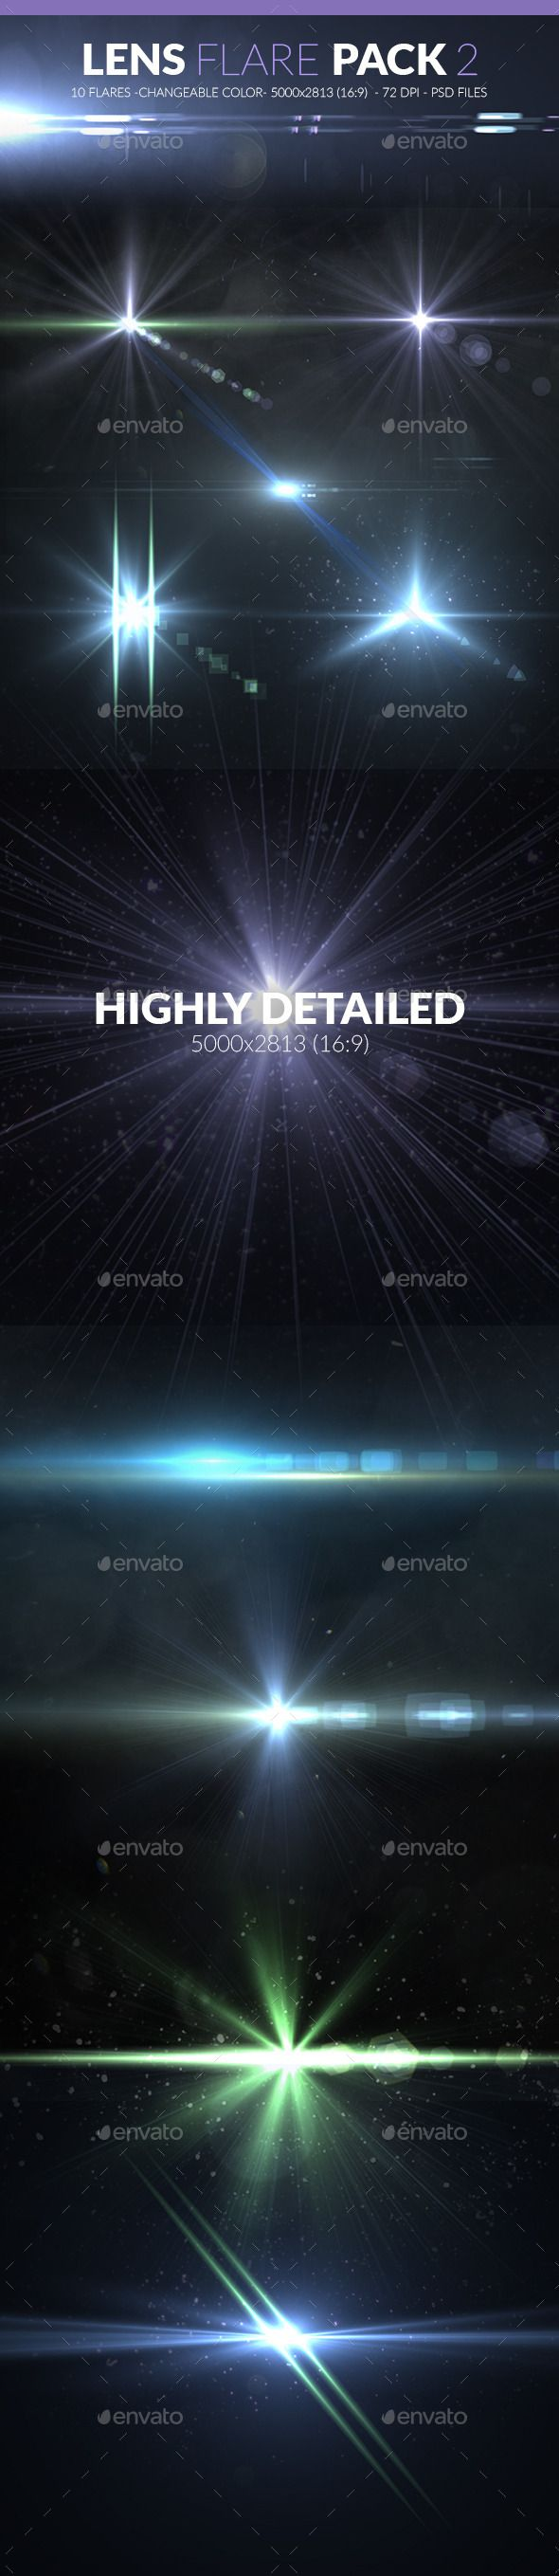 GraphicRiver Lens Flare Pack 2 10531654